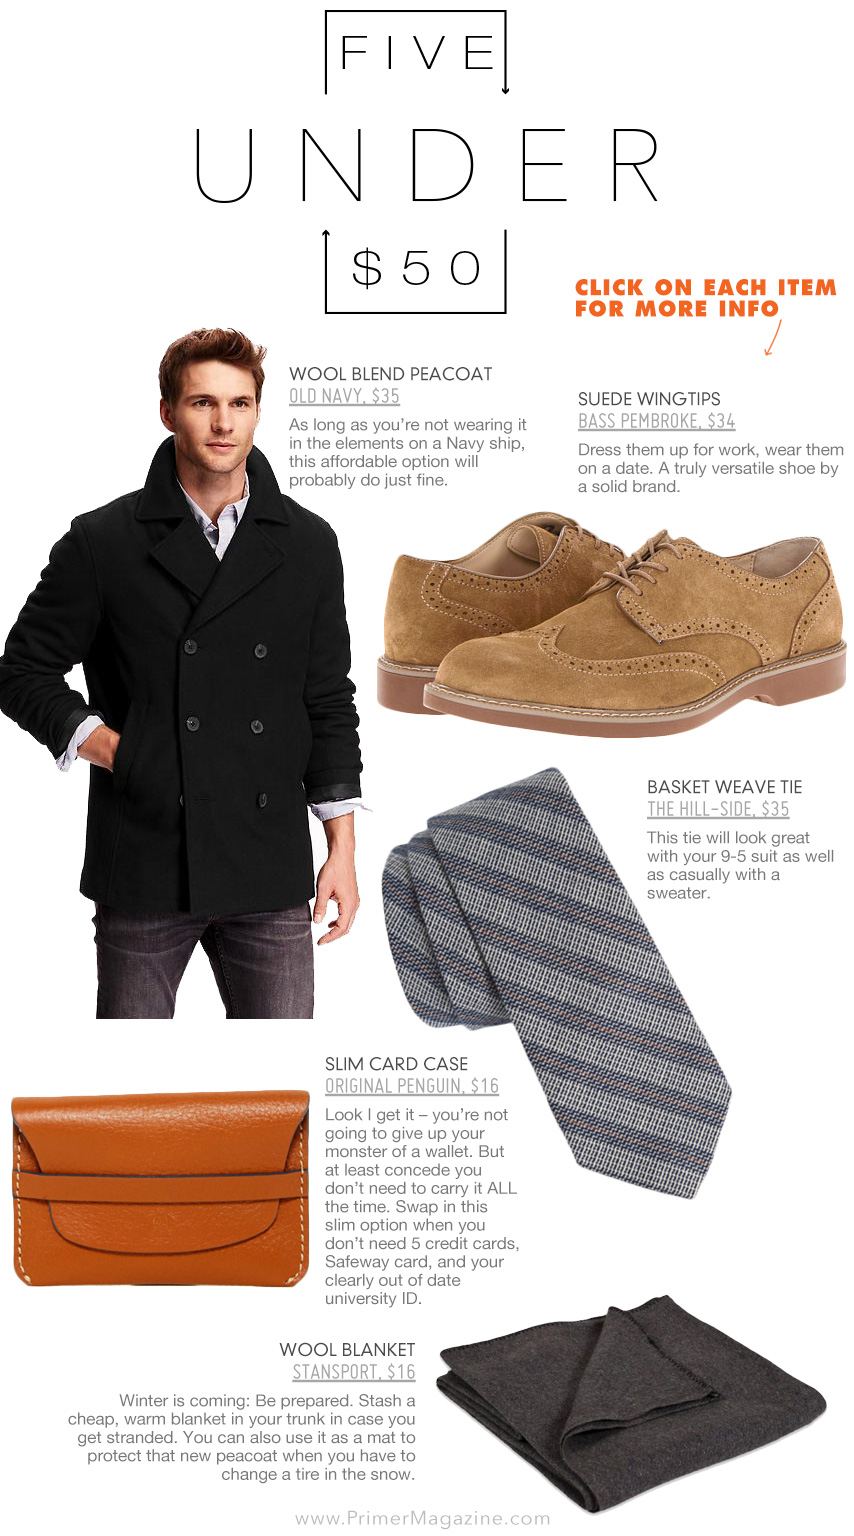 5 Under 50 - peacoat, suede shoes, striped tie, wallet